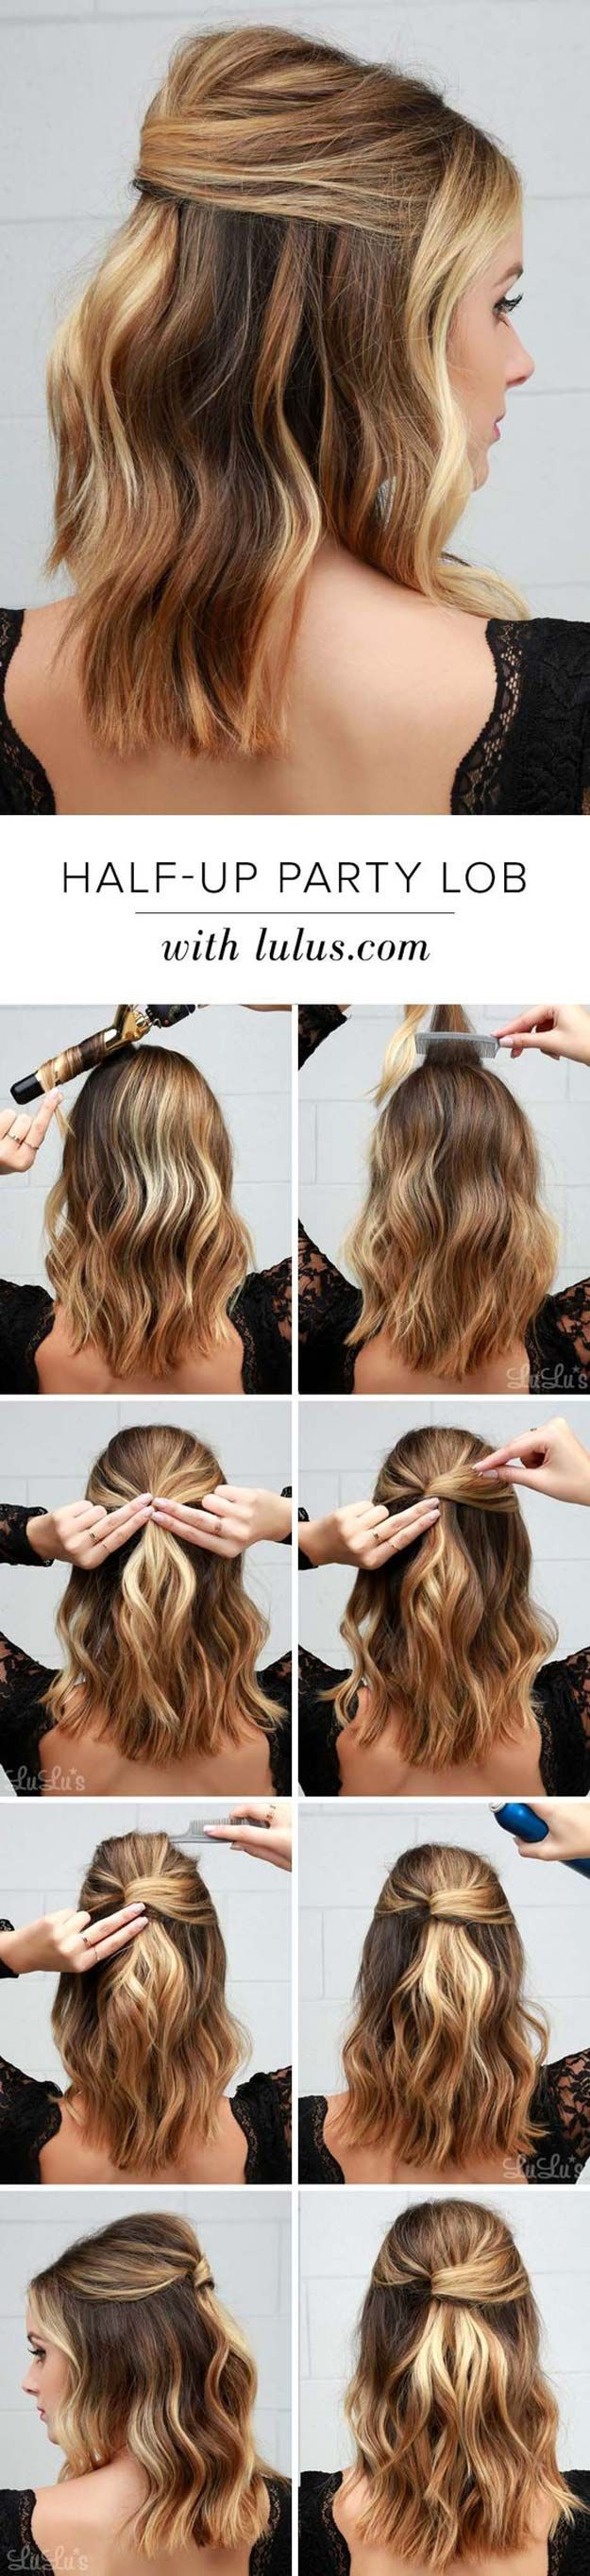 best beauté images on pinterest cute hairstyles hair ideas and